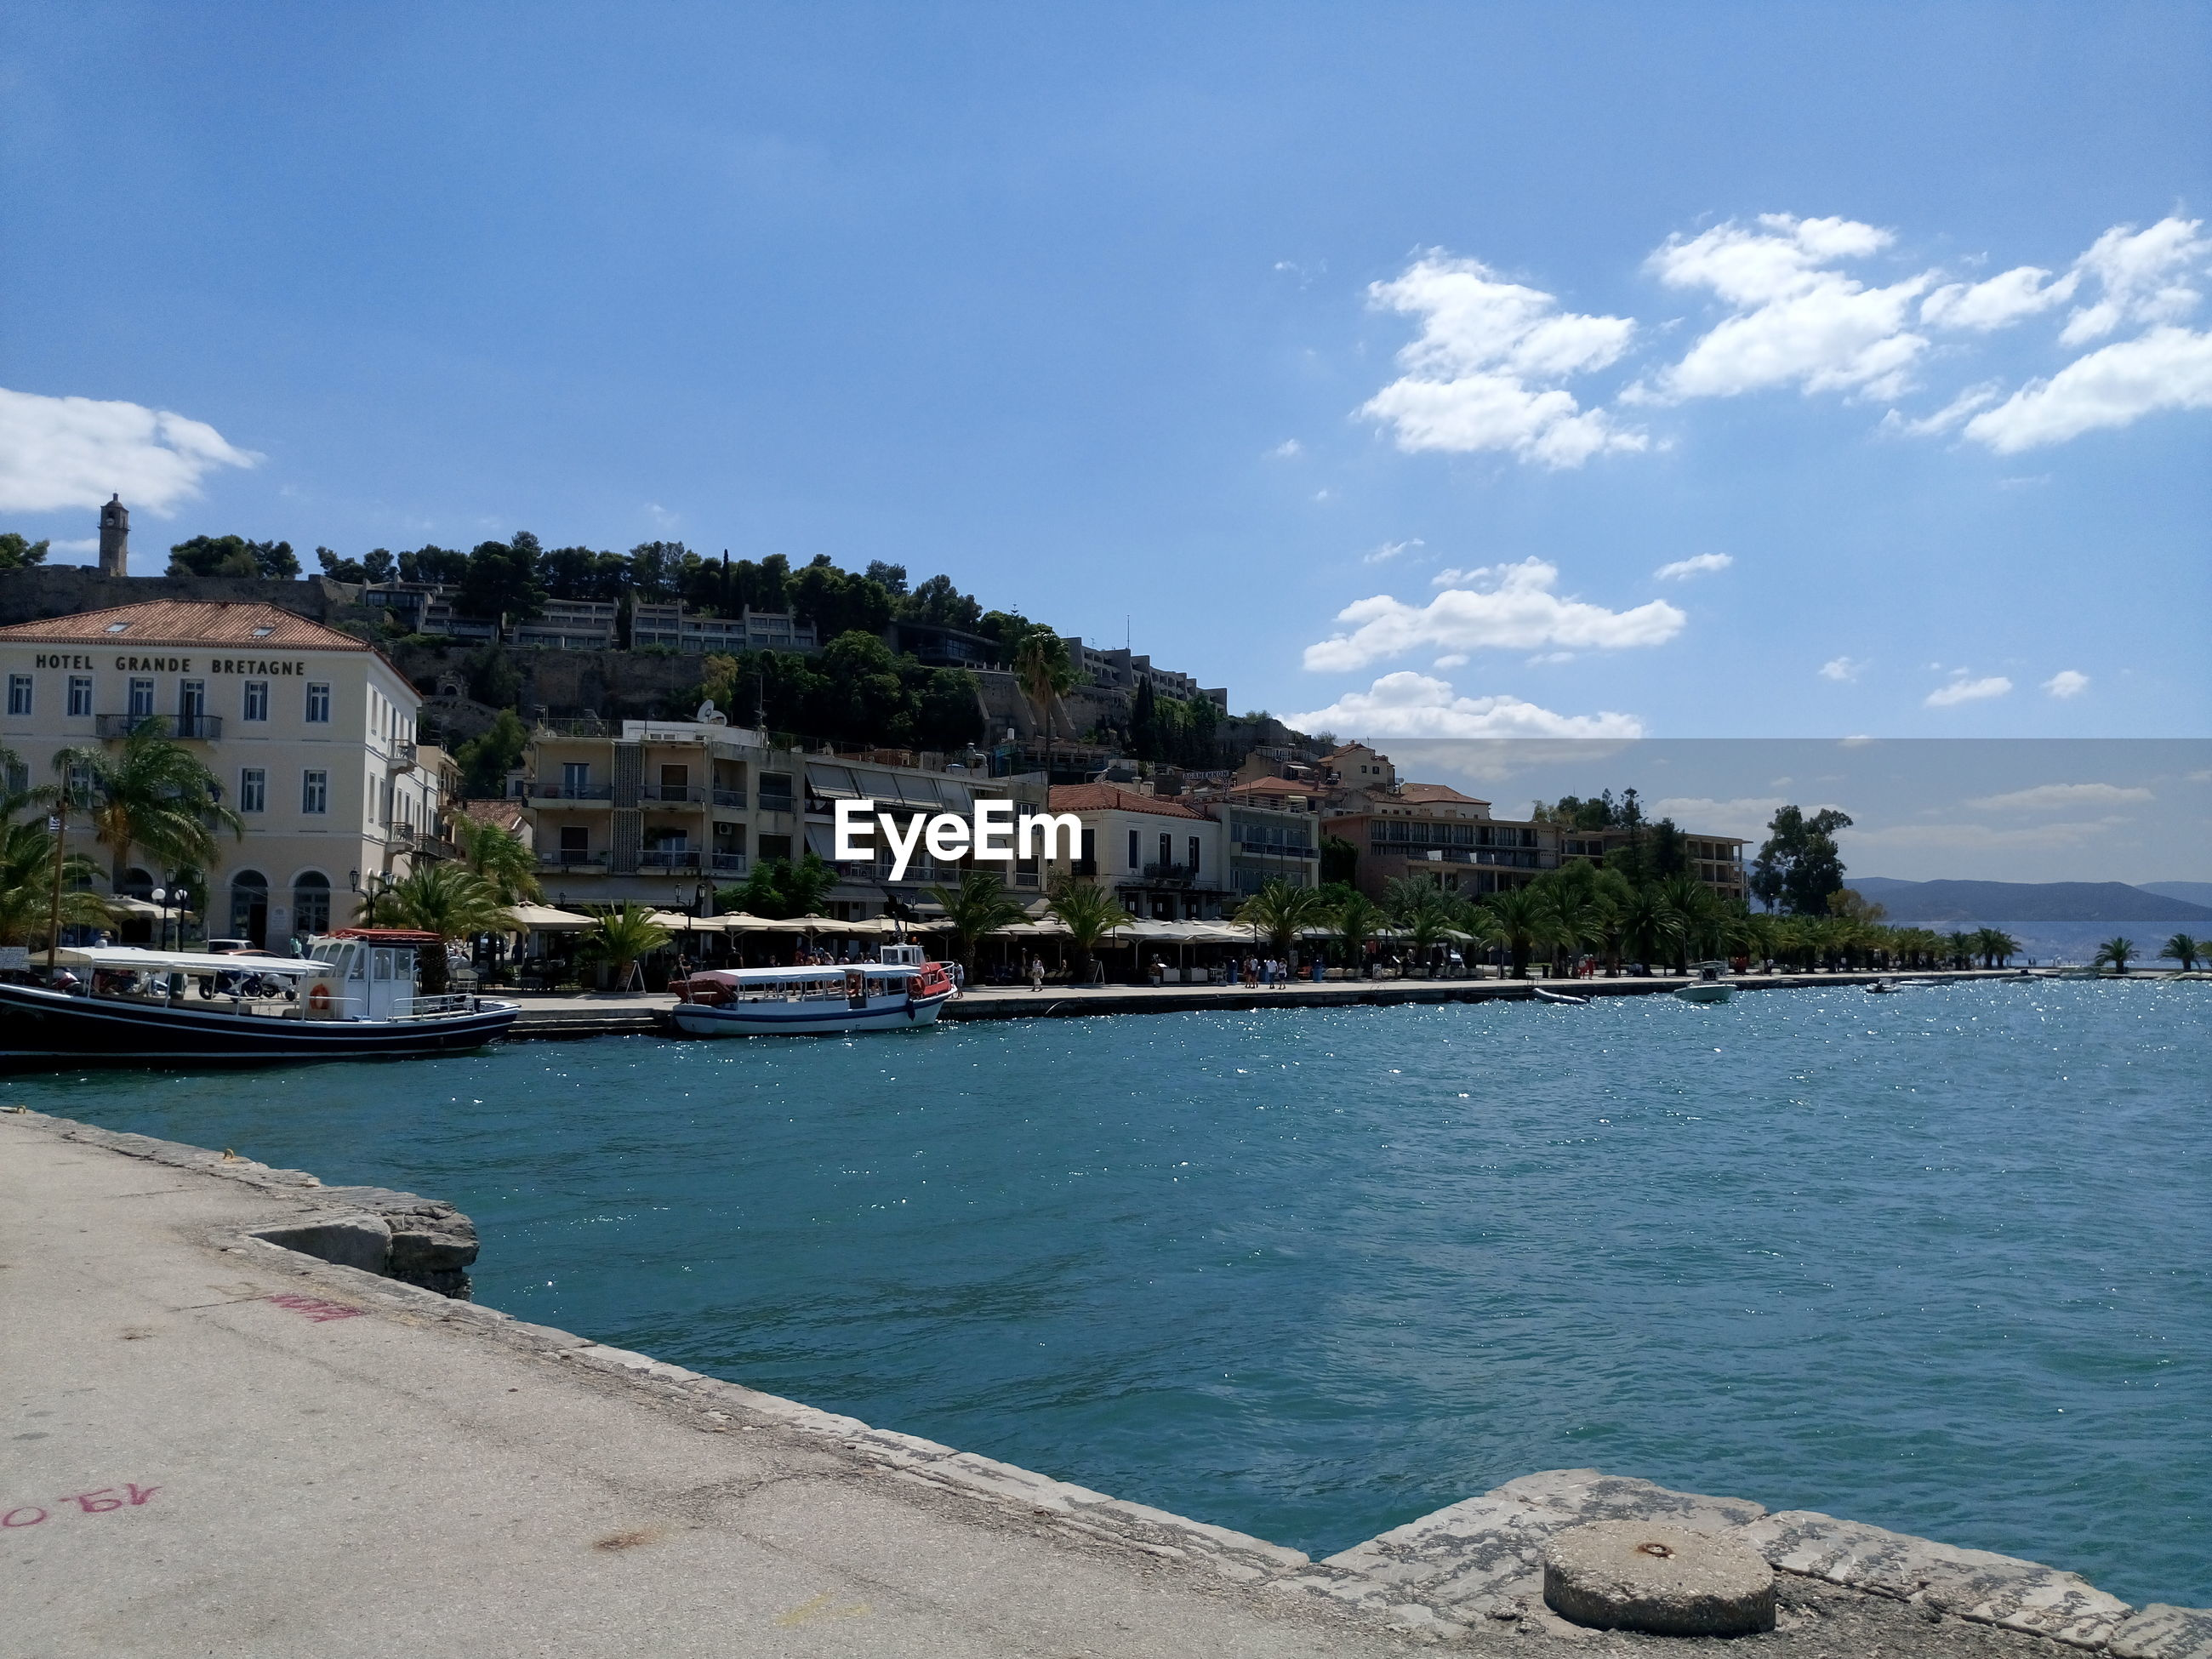 SCENIC VIEW OF SEA BY TOWN AGAINST SKY